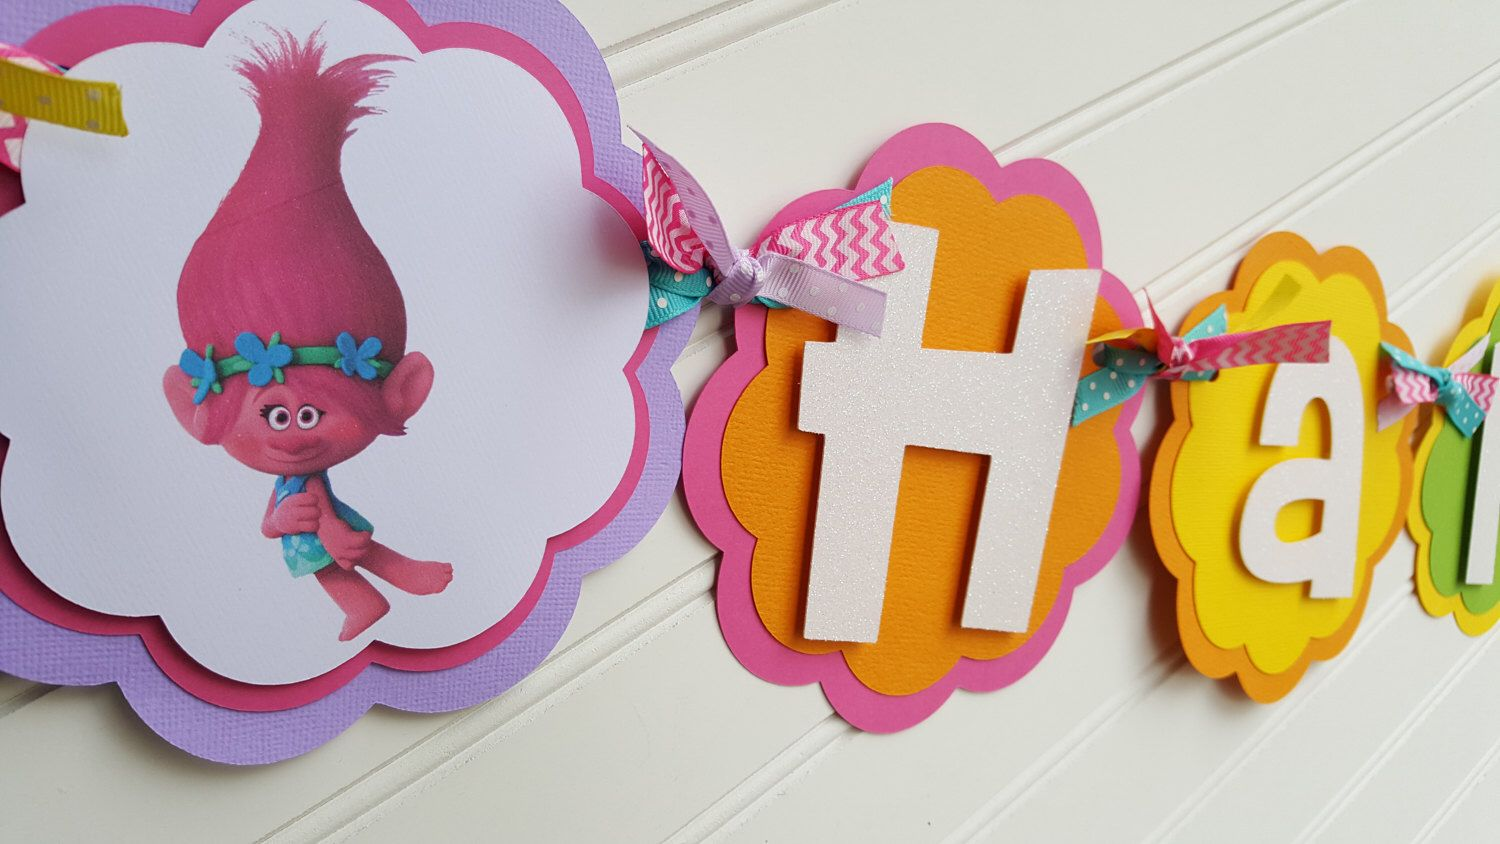 name banner for birthday party ; d47e700ab97f5a3b522006f6200692cd